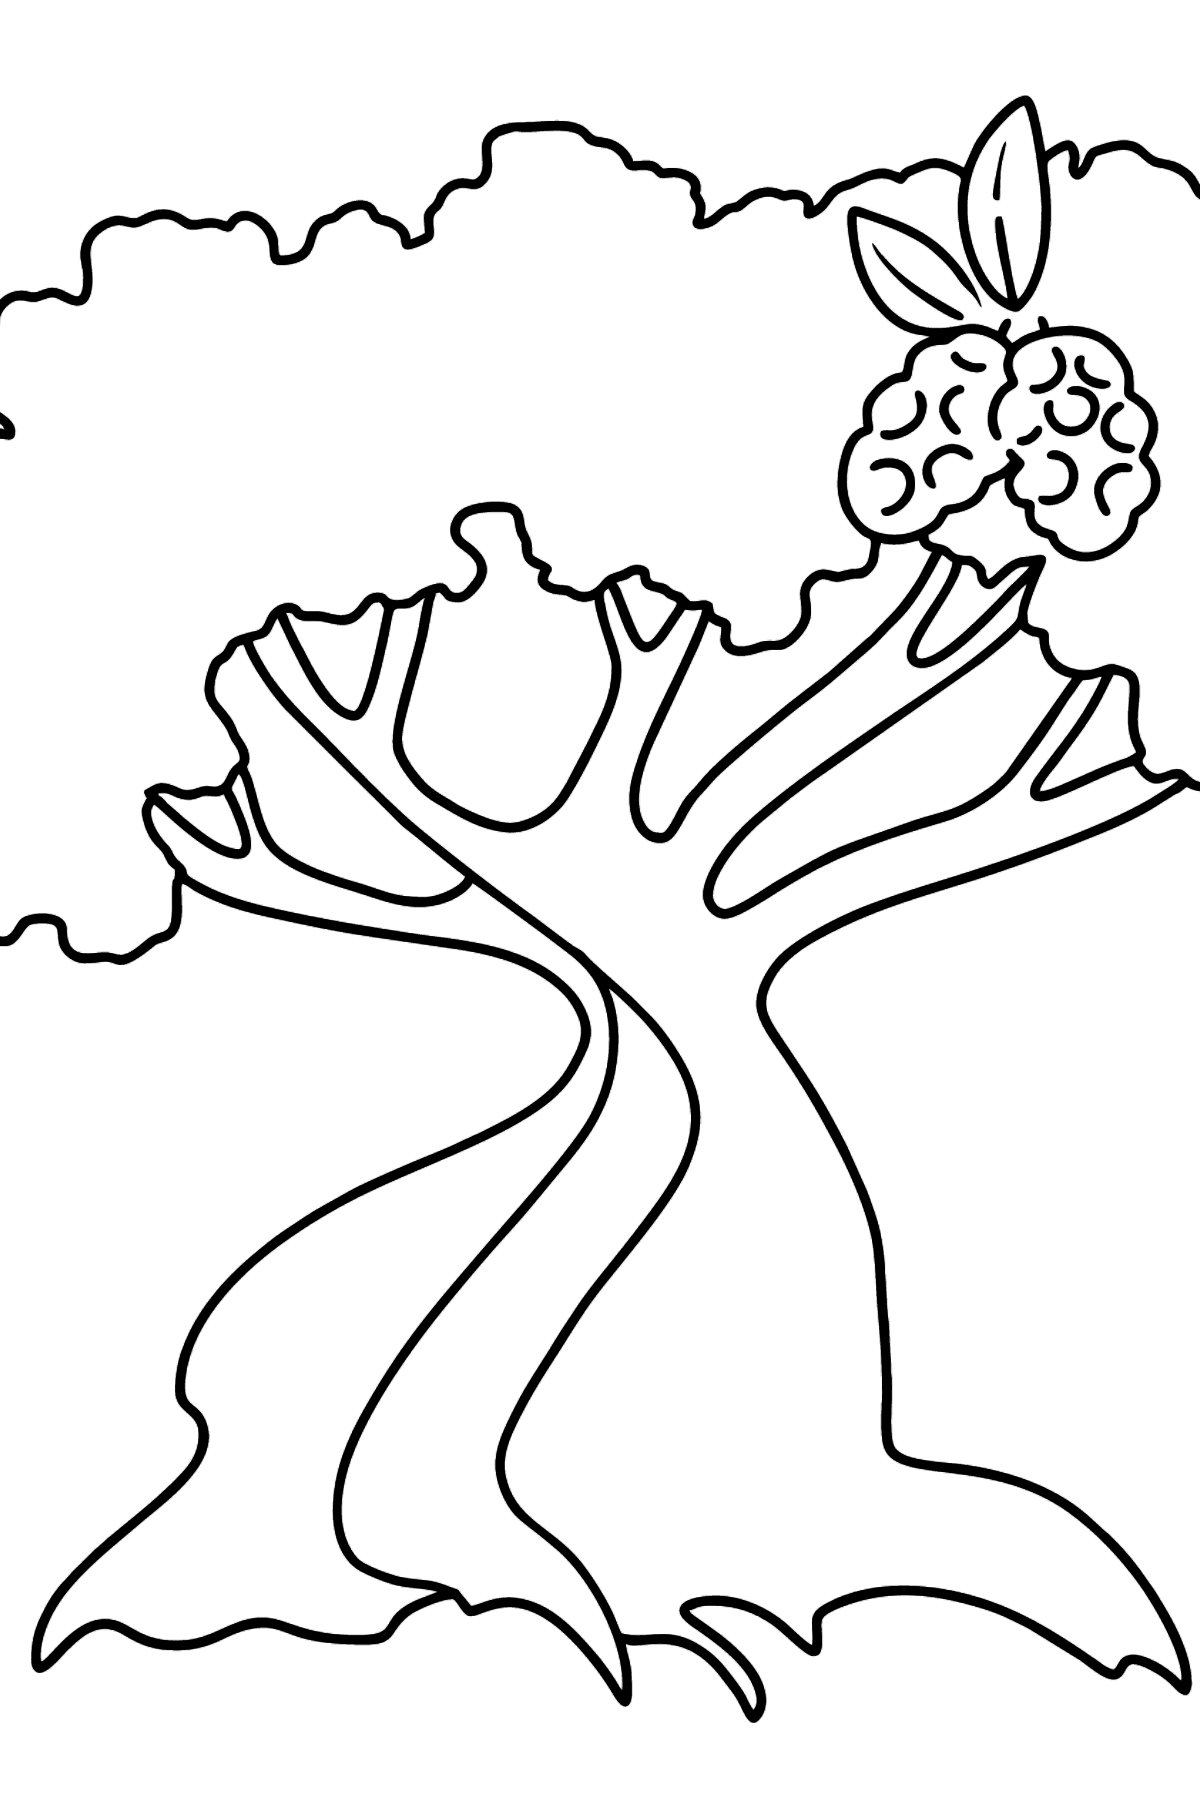 Cotton Tree coloring page - Coloring Pages for Kids